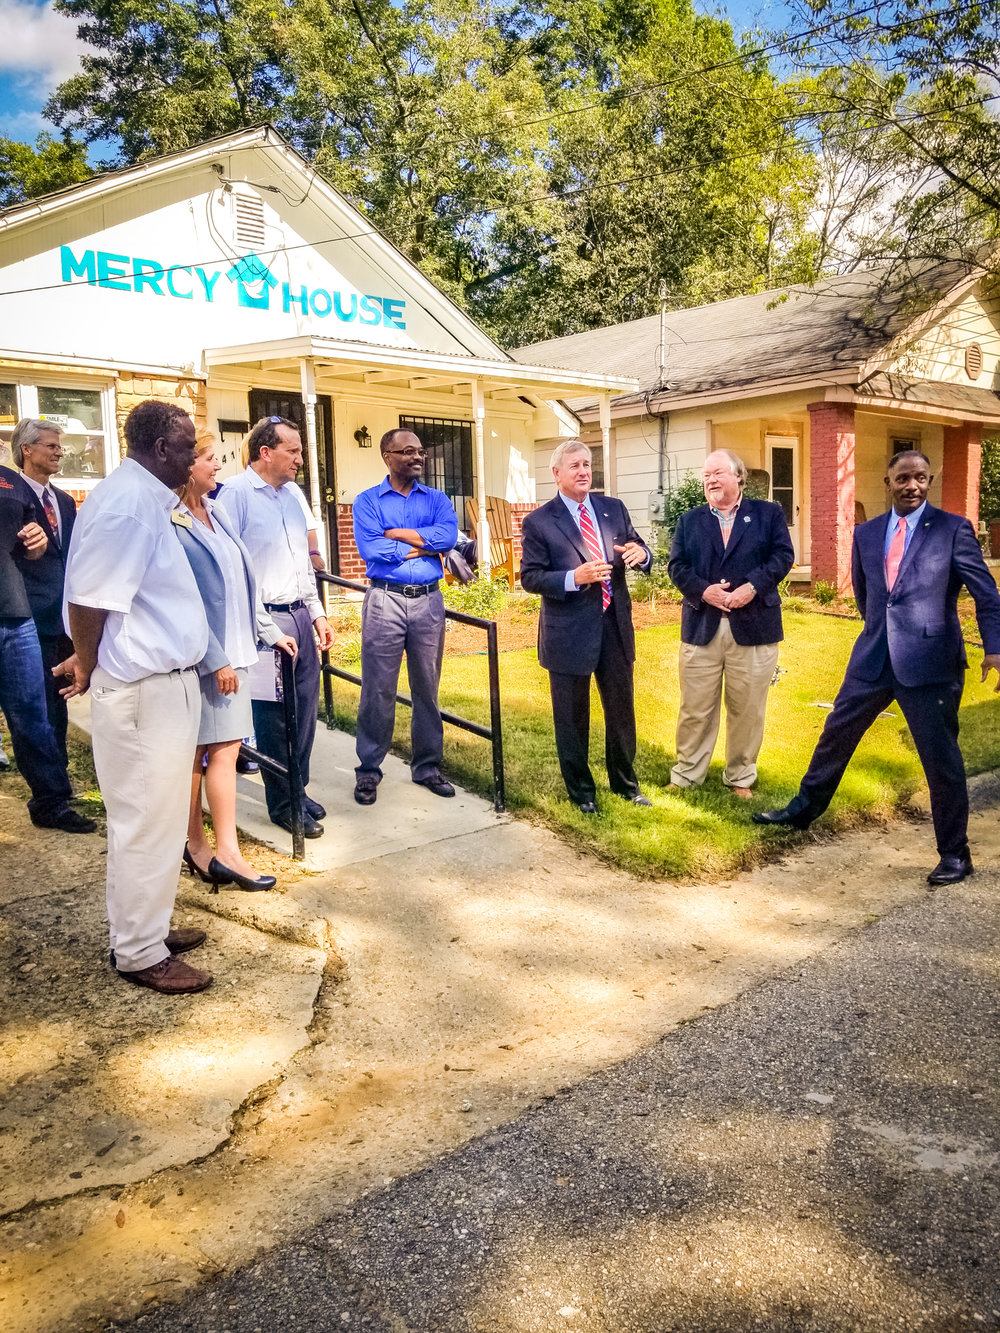 mercy house site-12.jpg